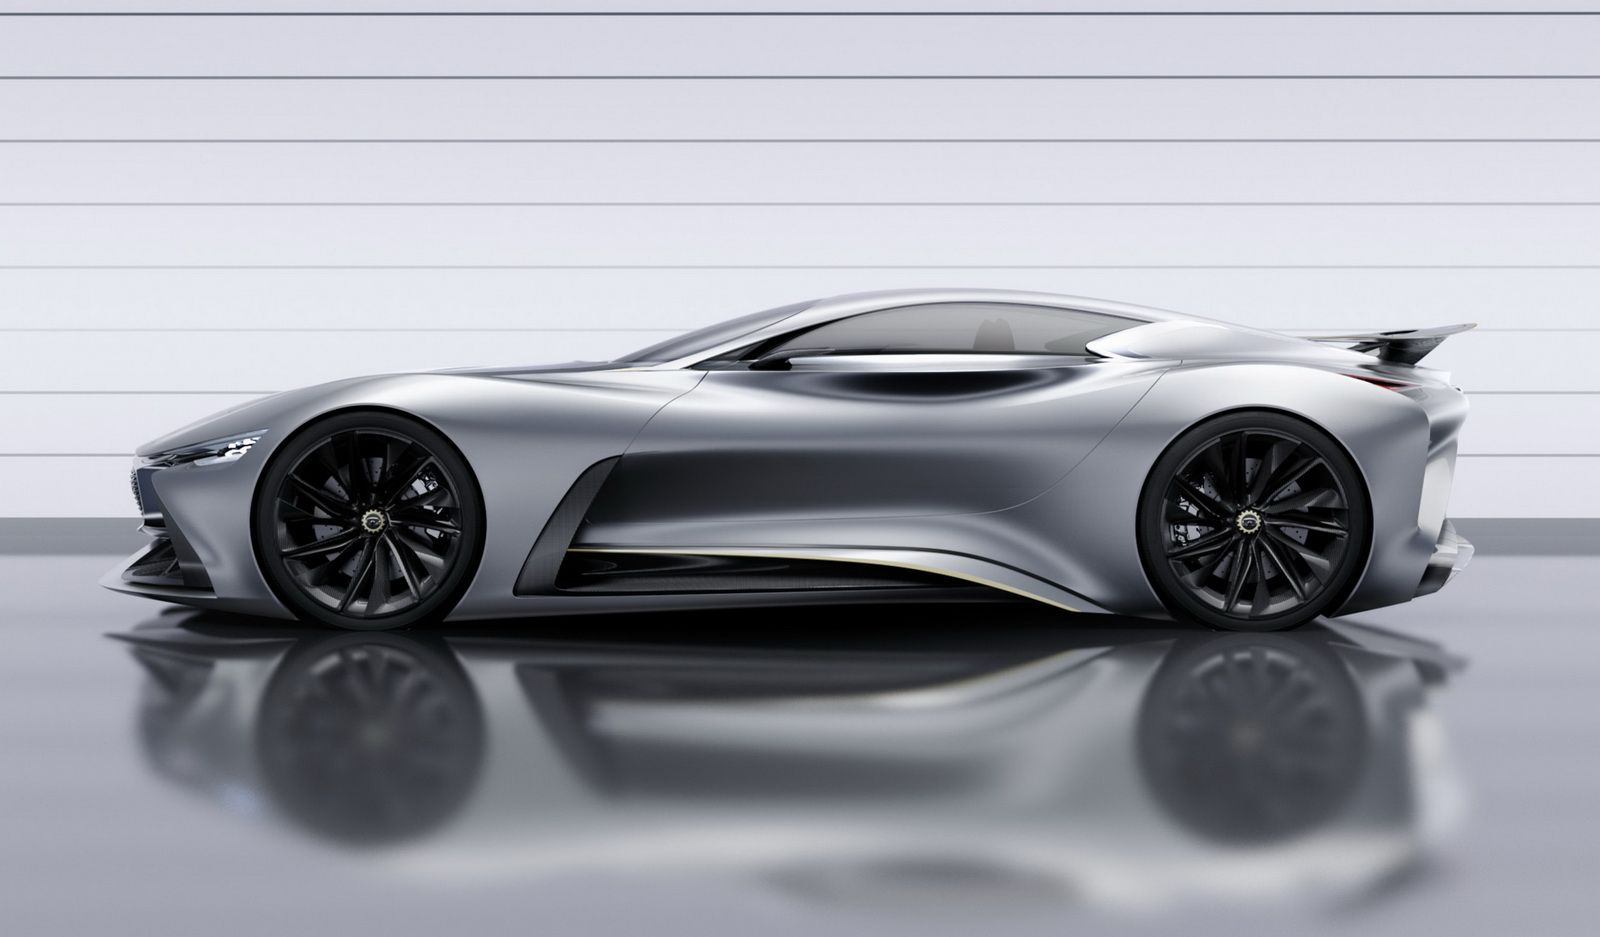 Infiniti S Concept Vision Gran Turismo May Preview A Future